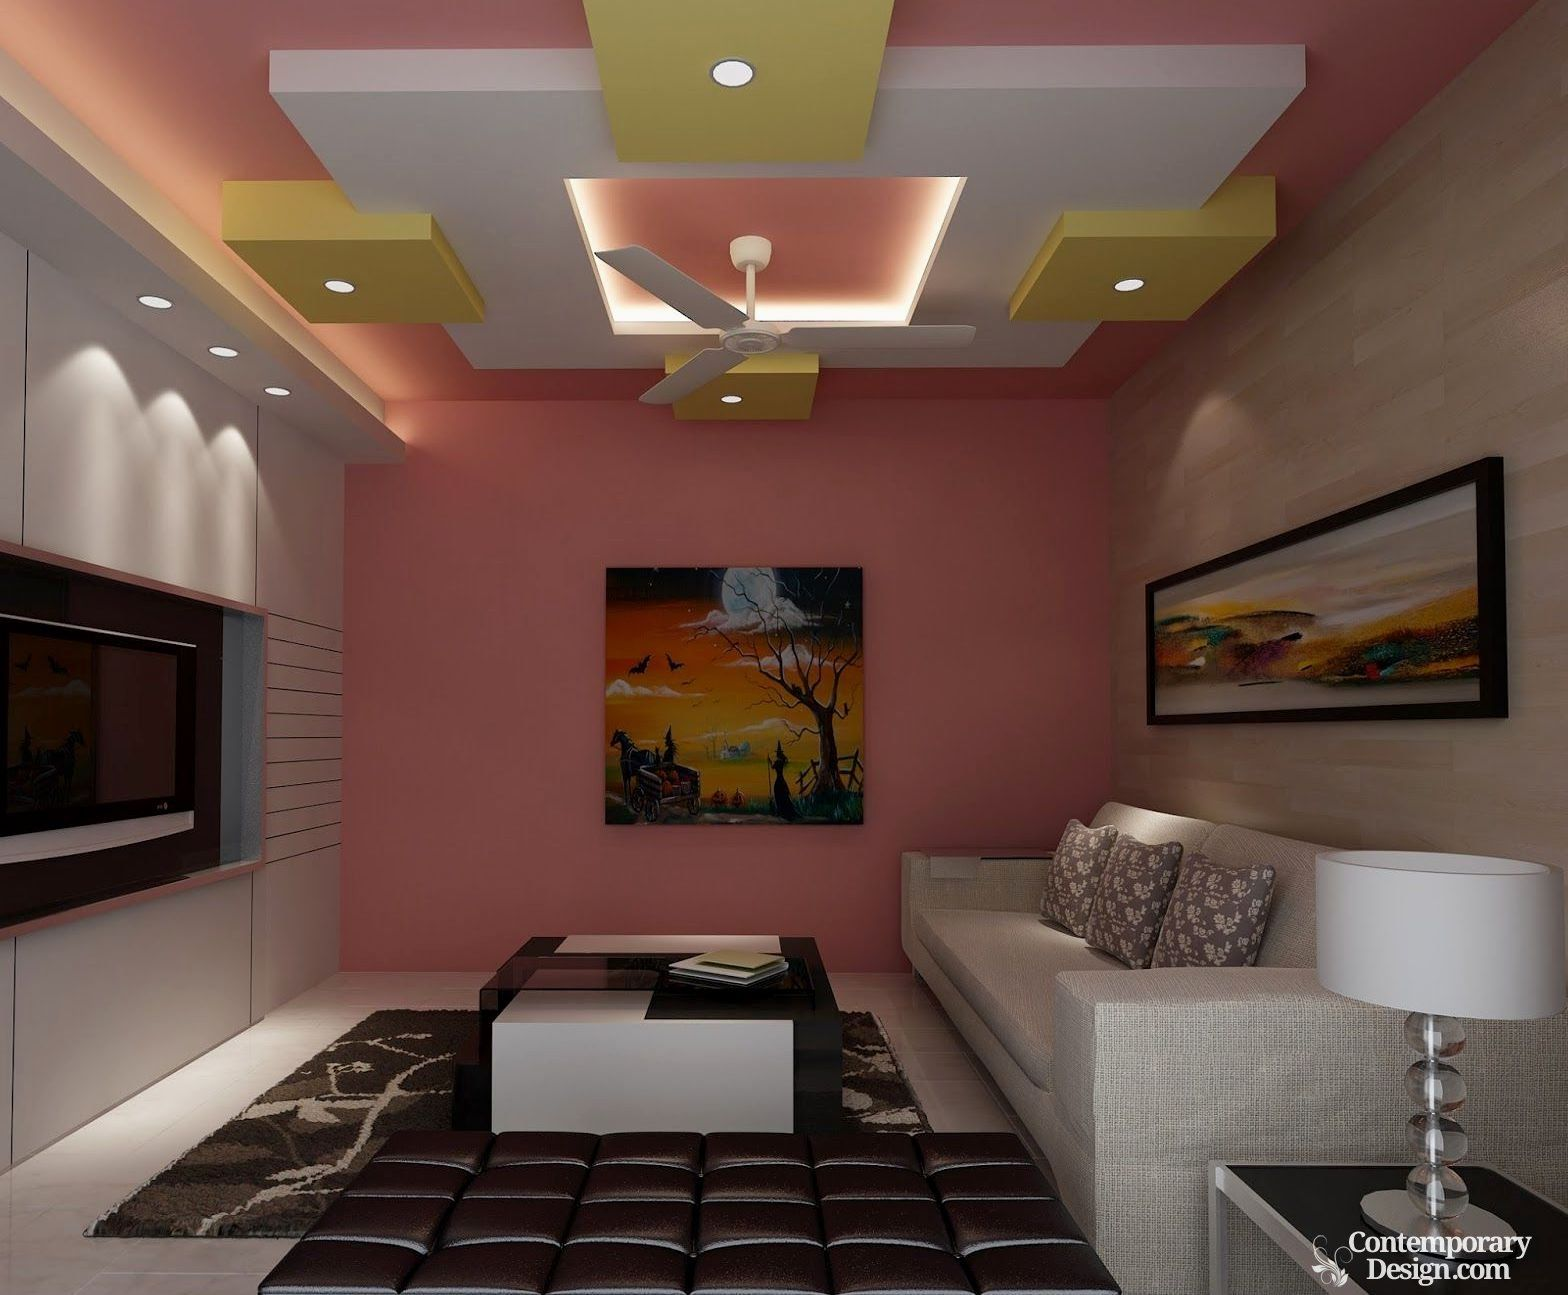 Fall Ceiling Design For Hall Latest False Ceiling Designs For Living Room Ceiling Design Living Room Ceiling Design Bedroom Ceiling Design Modern,Step By Step Modern Simple Mehndi Designs For Beginners